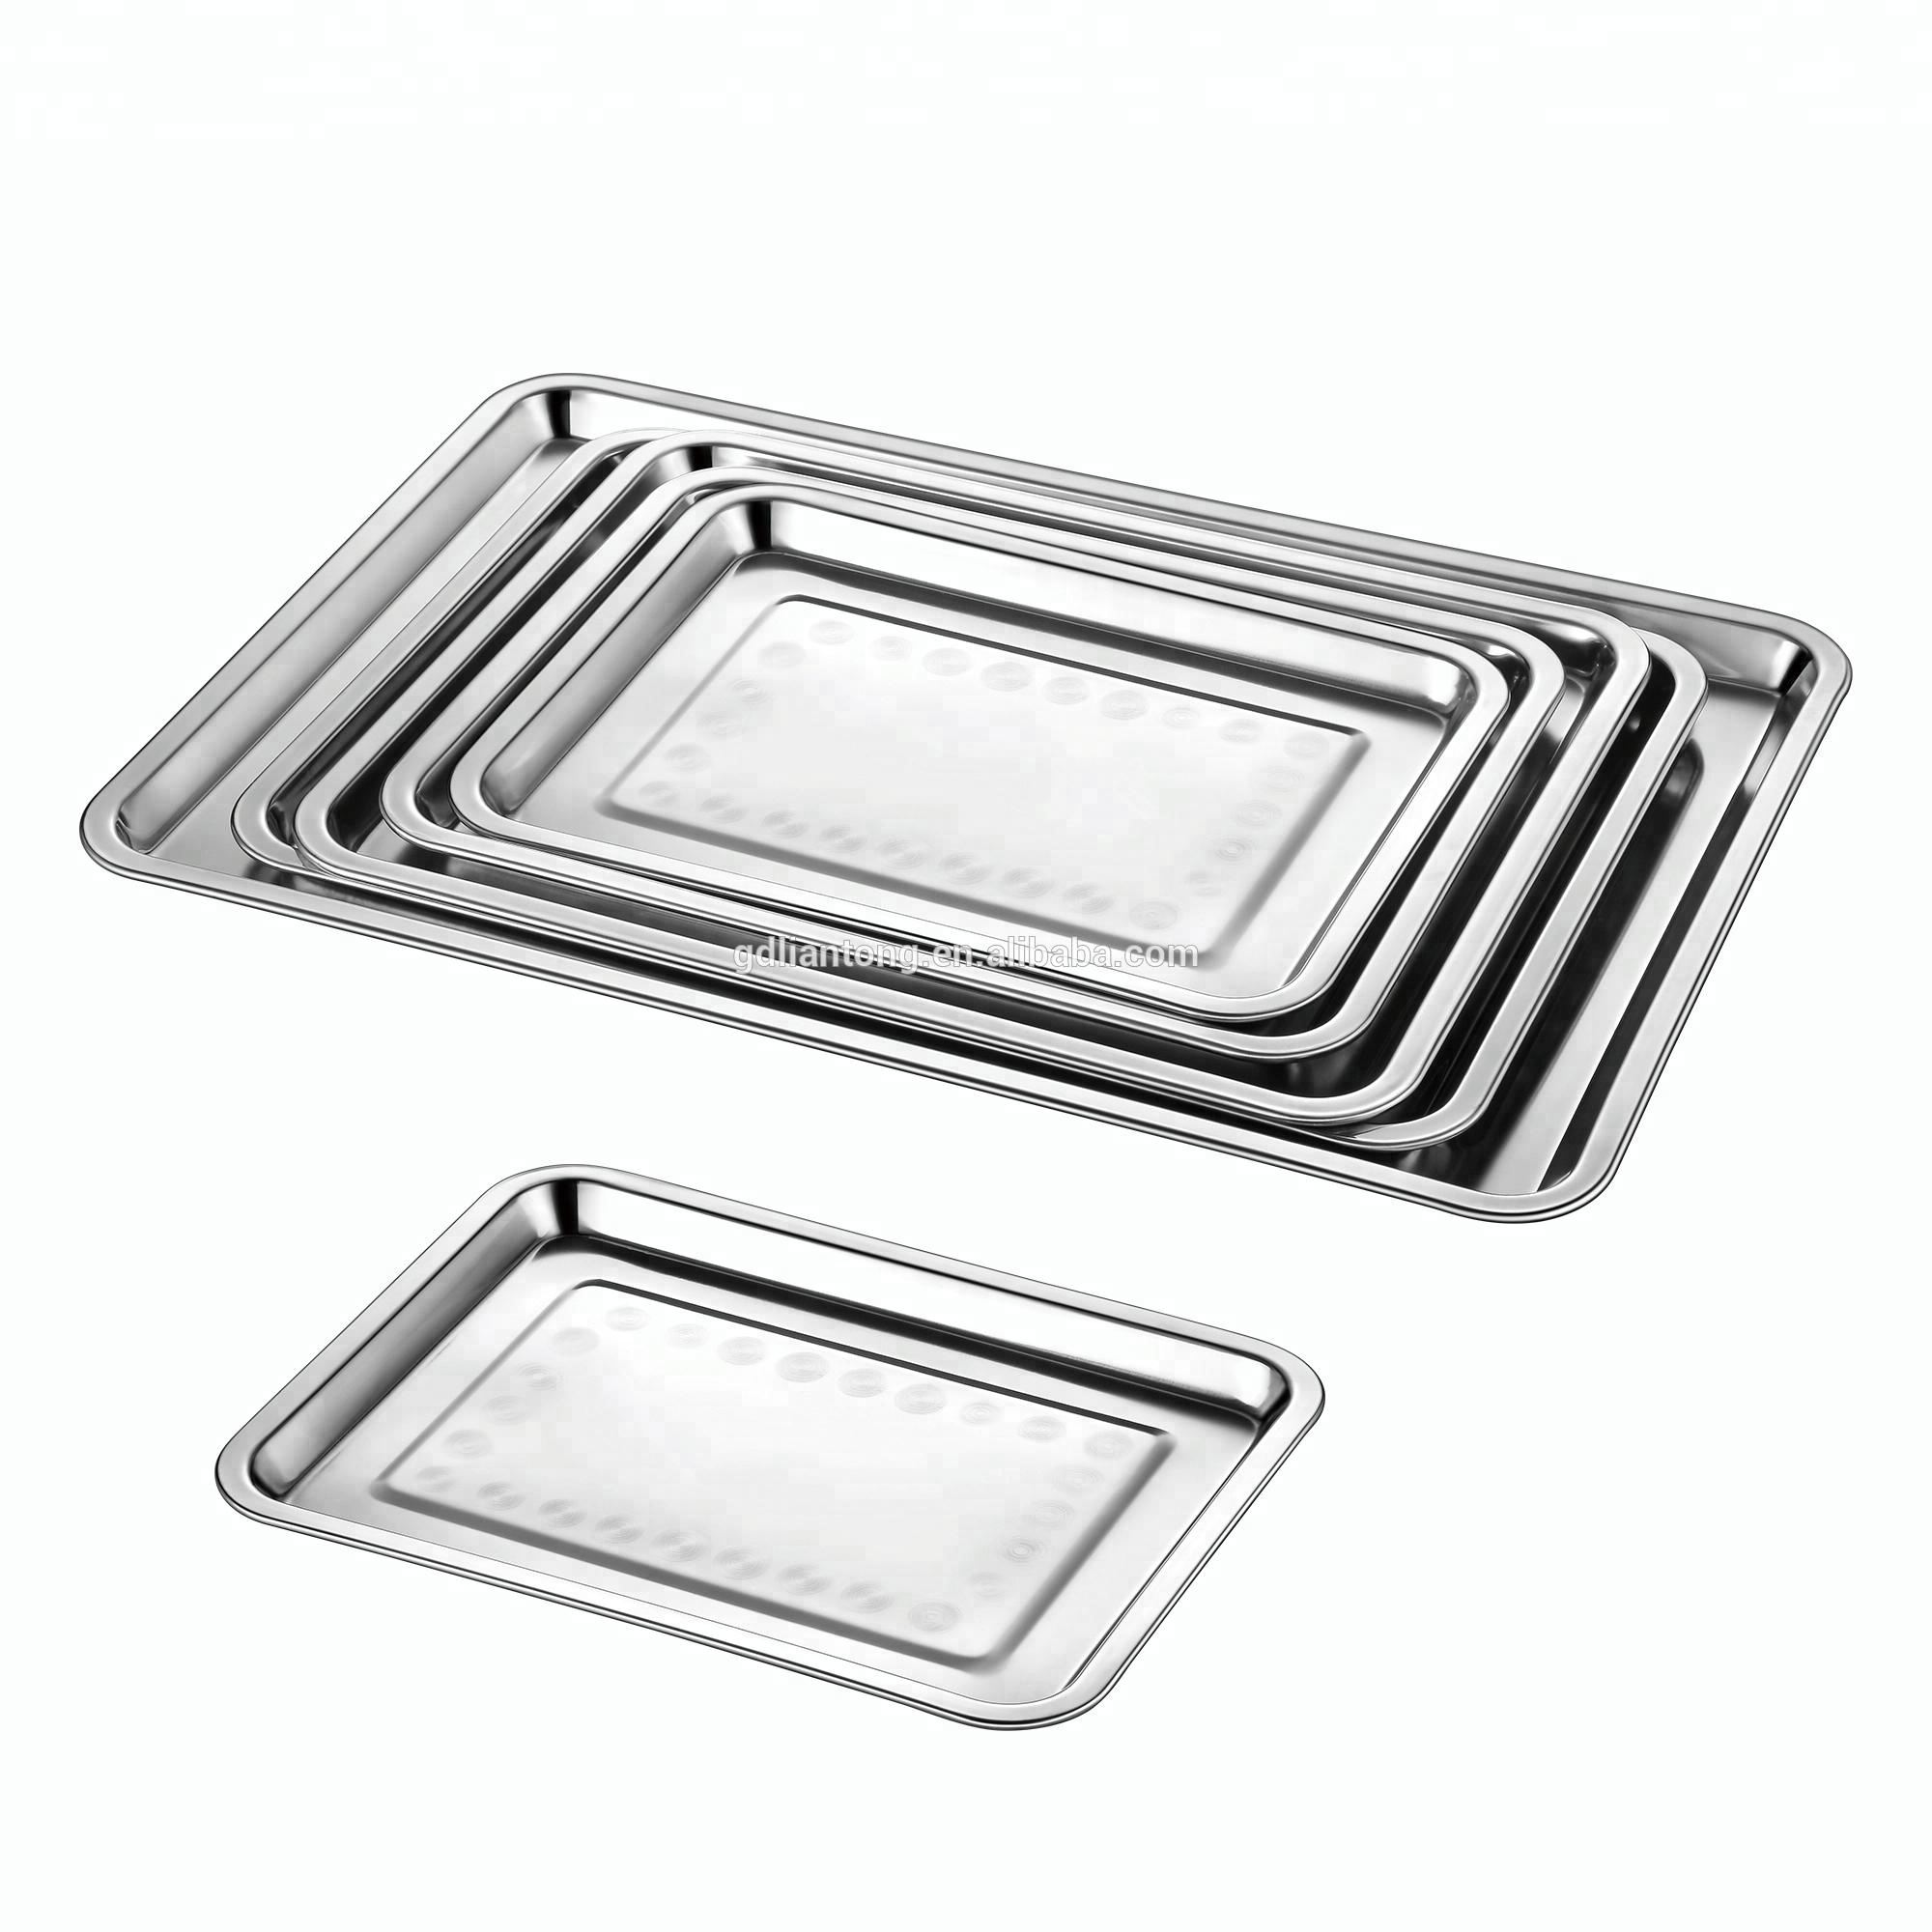 Cheap stainless steel mirror dinner buffet bbq baking rectangular meat food serving tray